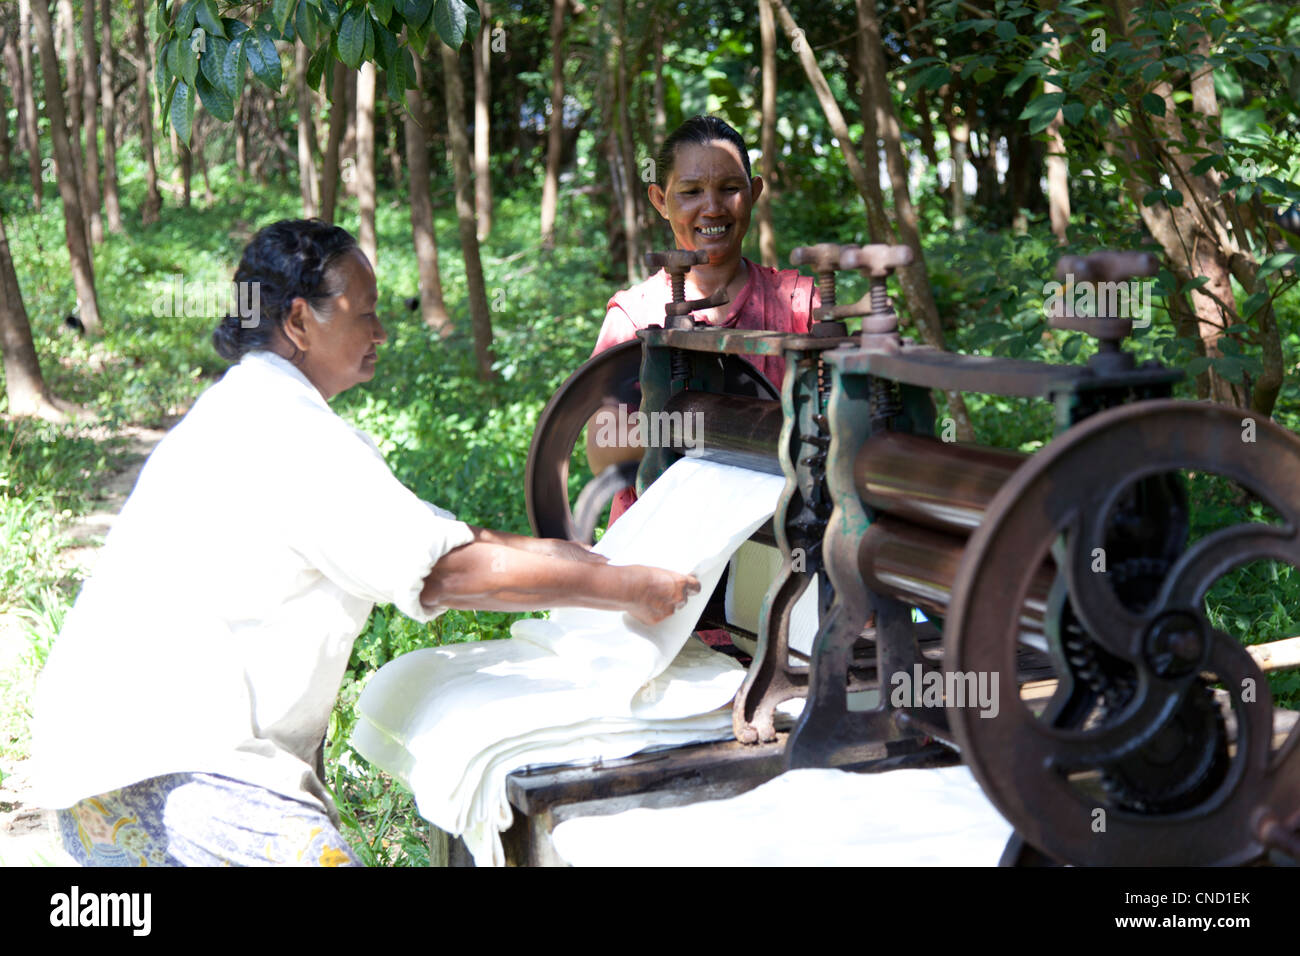 Thai women wringing fresh rubber sheets in a mangle machine (Thailand). Thaîlandaises essorant des plaques - Stock Image